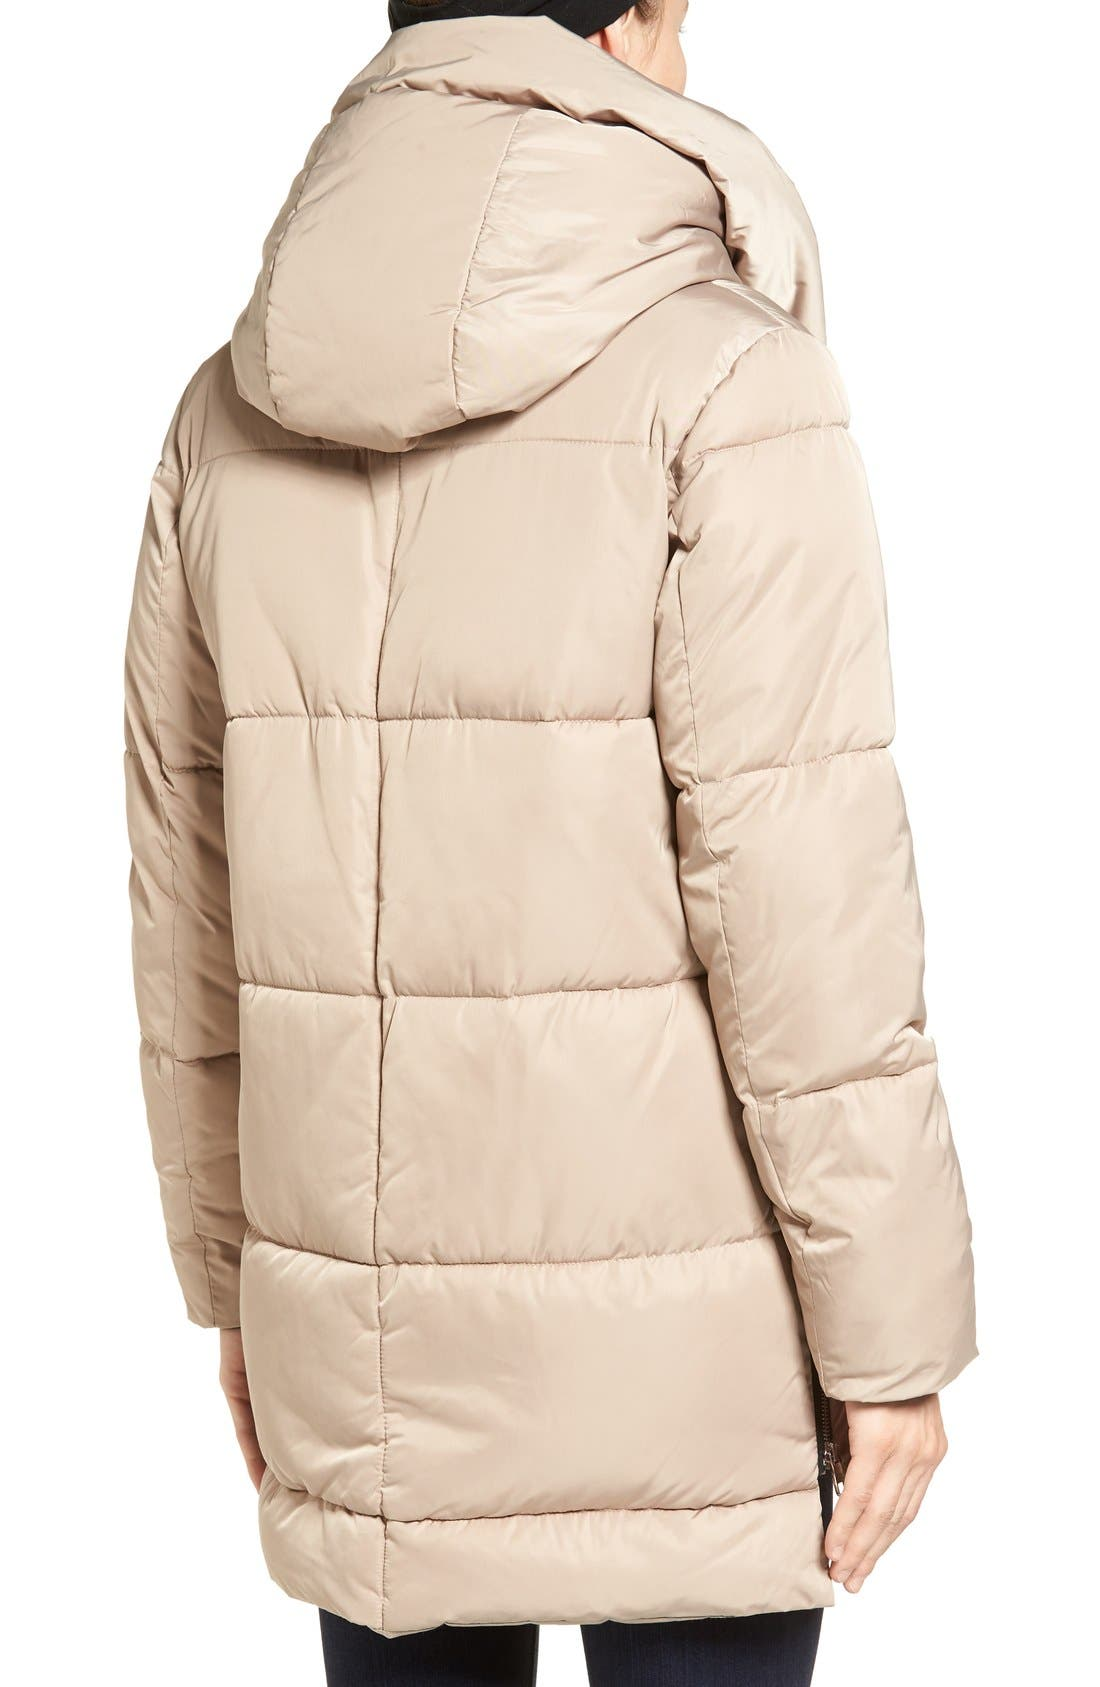 Hooded Puffer Jacket with Faux Shearling Trim,                             Alternate thumbnail 2, color,                             Sand